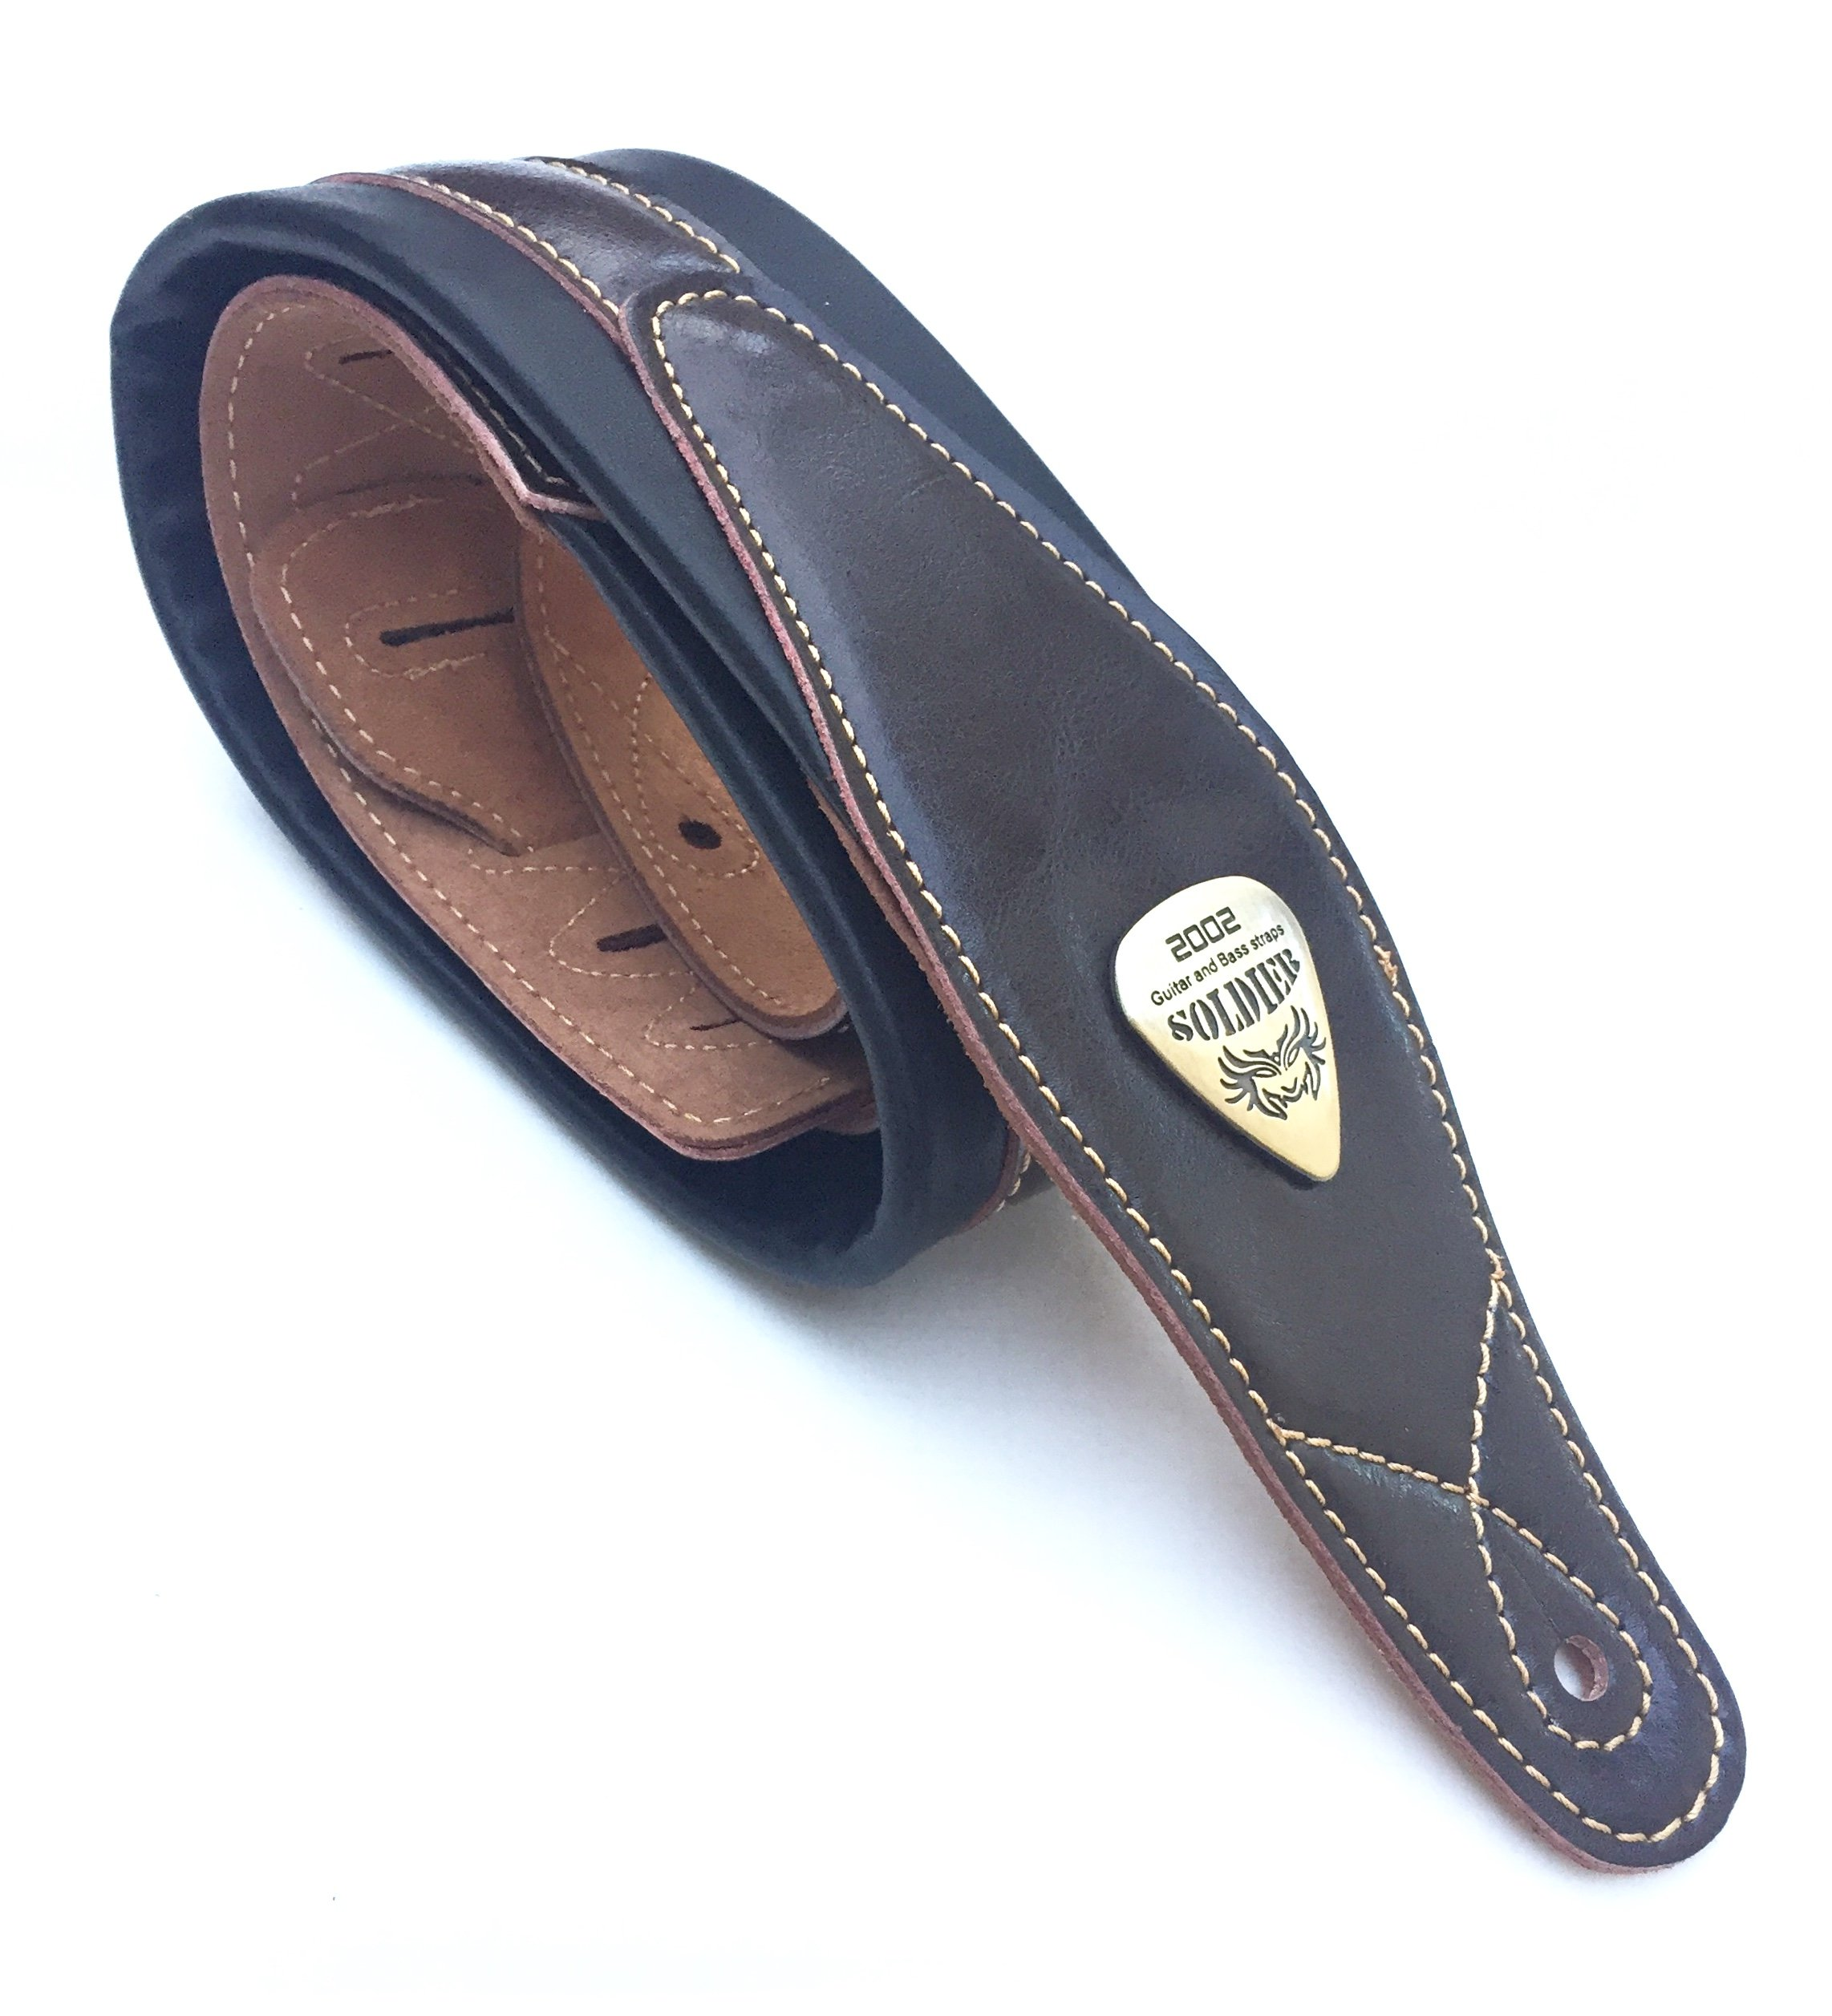 Legato Guitar Strap 3 Inches Wide Double Padded Soft Leather by Legato